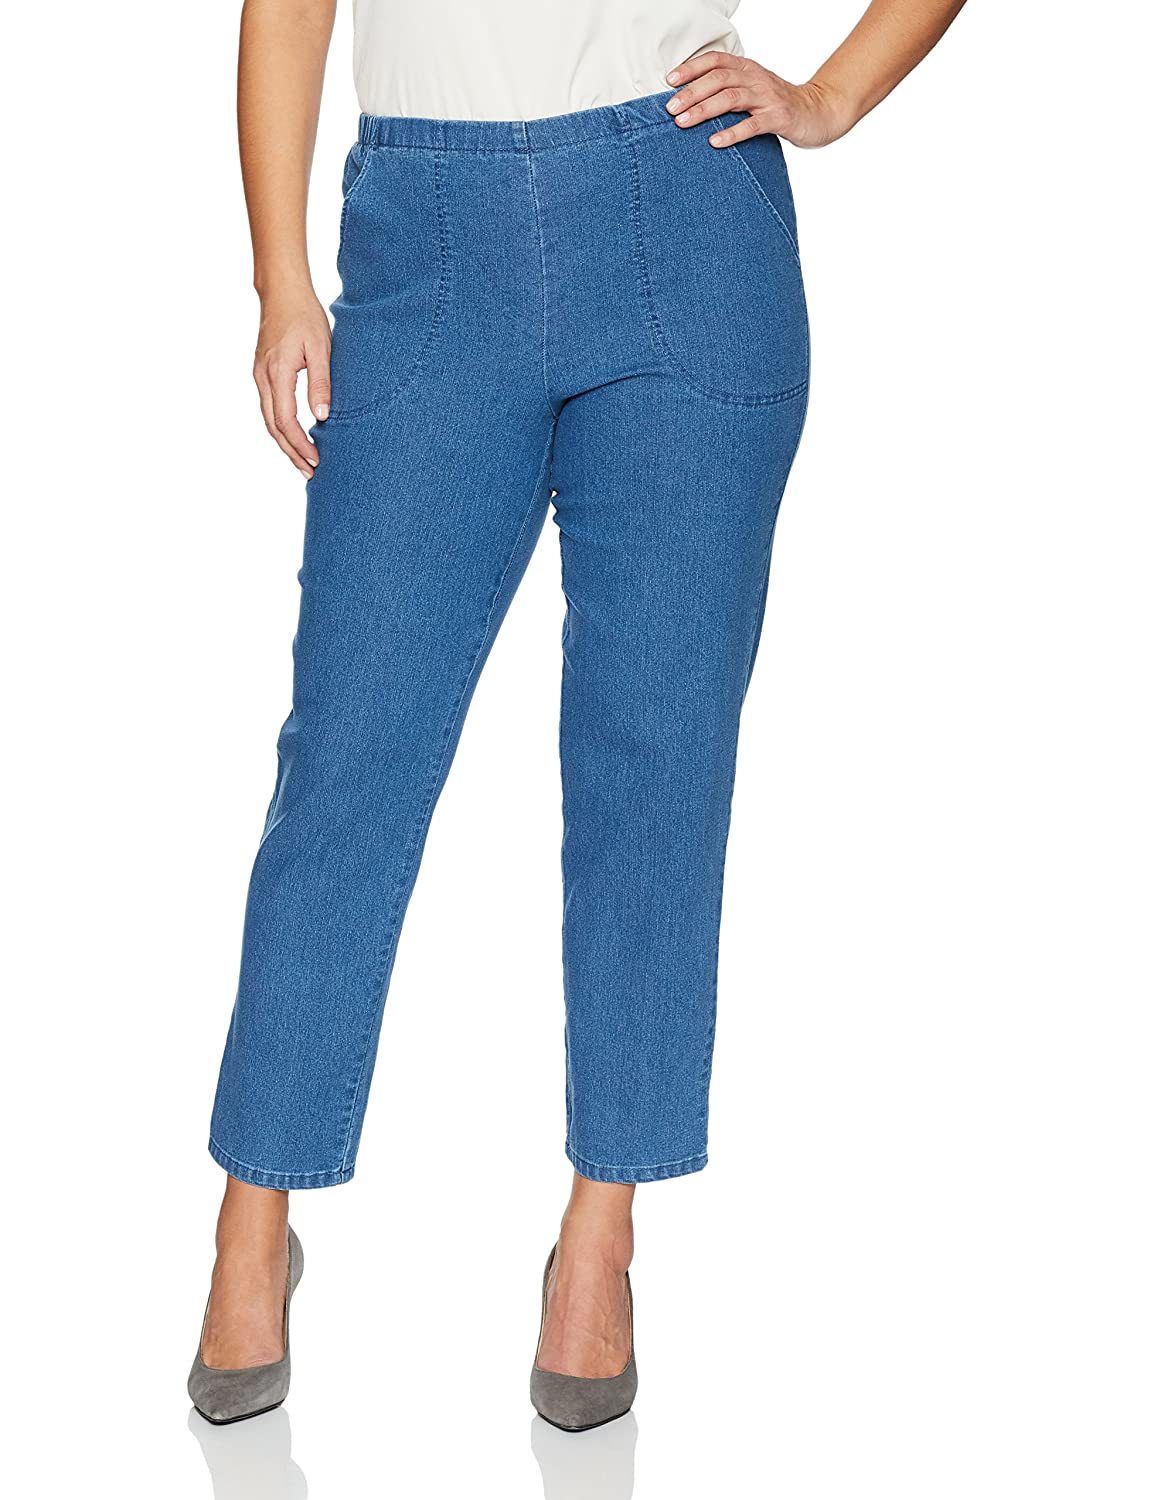 c029ea73d6 Just My Size Women's Apparel Women's Plus Size Stretch Pull on Jean at  Amazon Women's Clothing store: